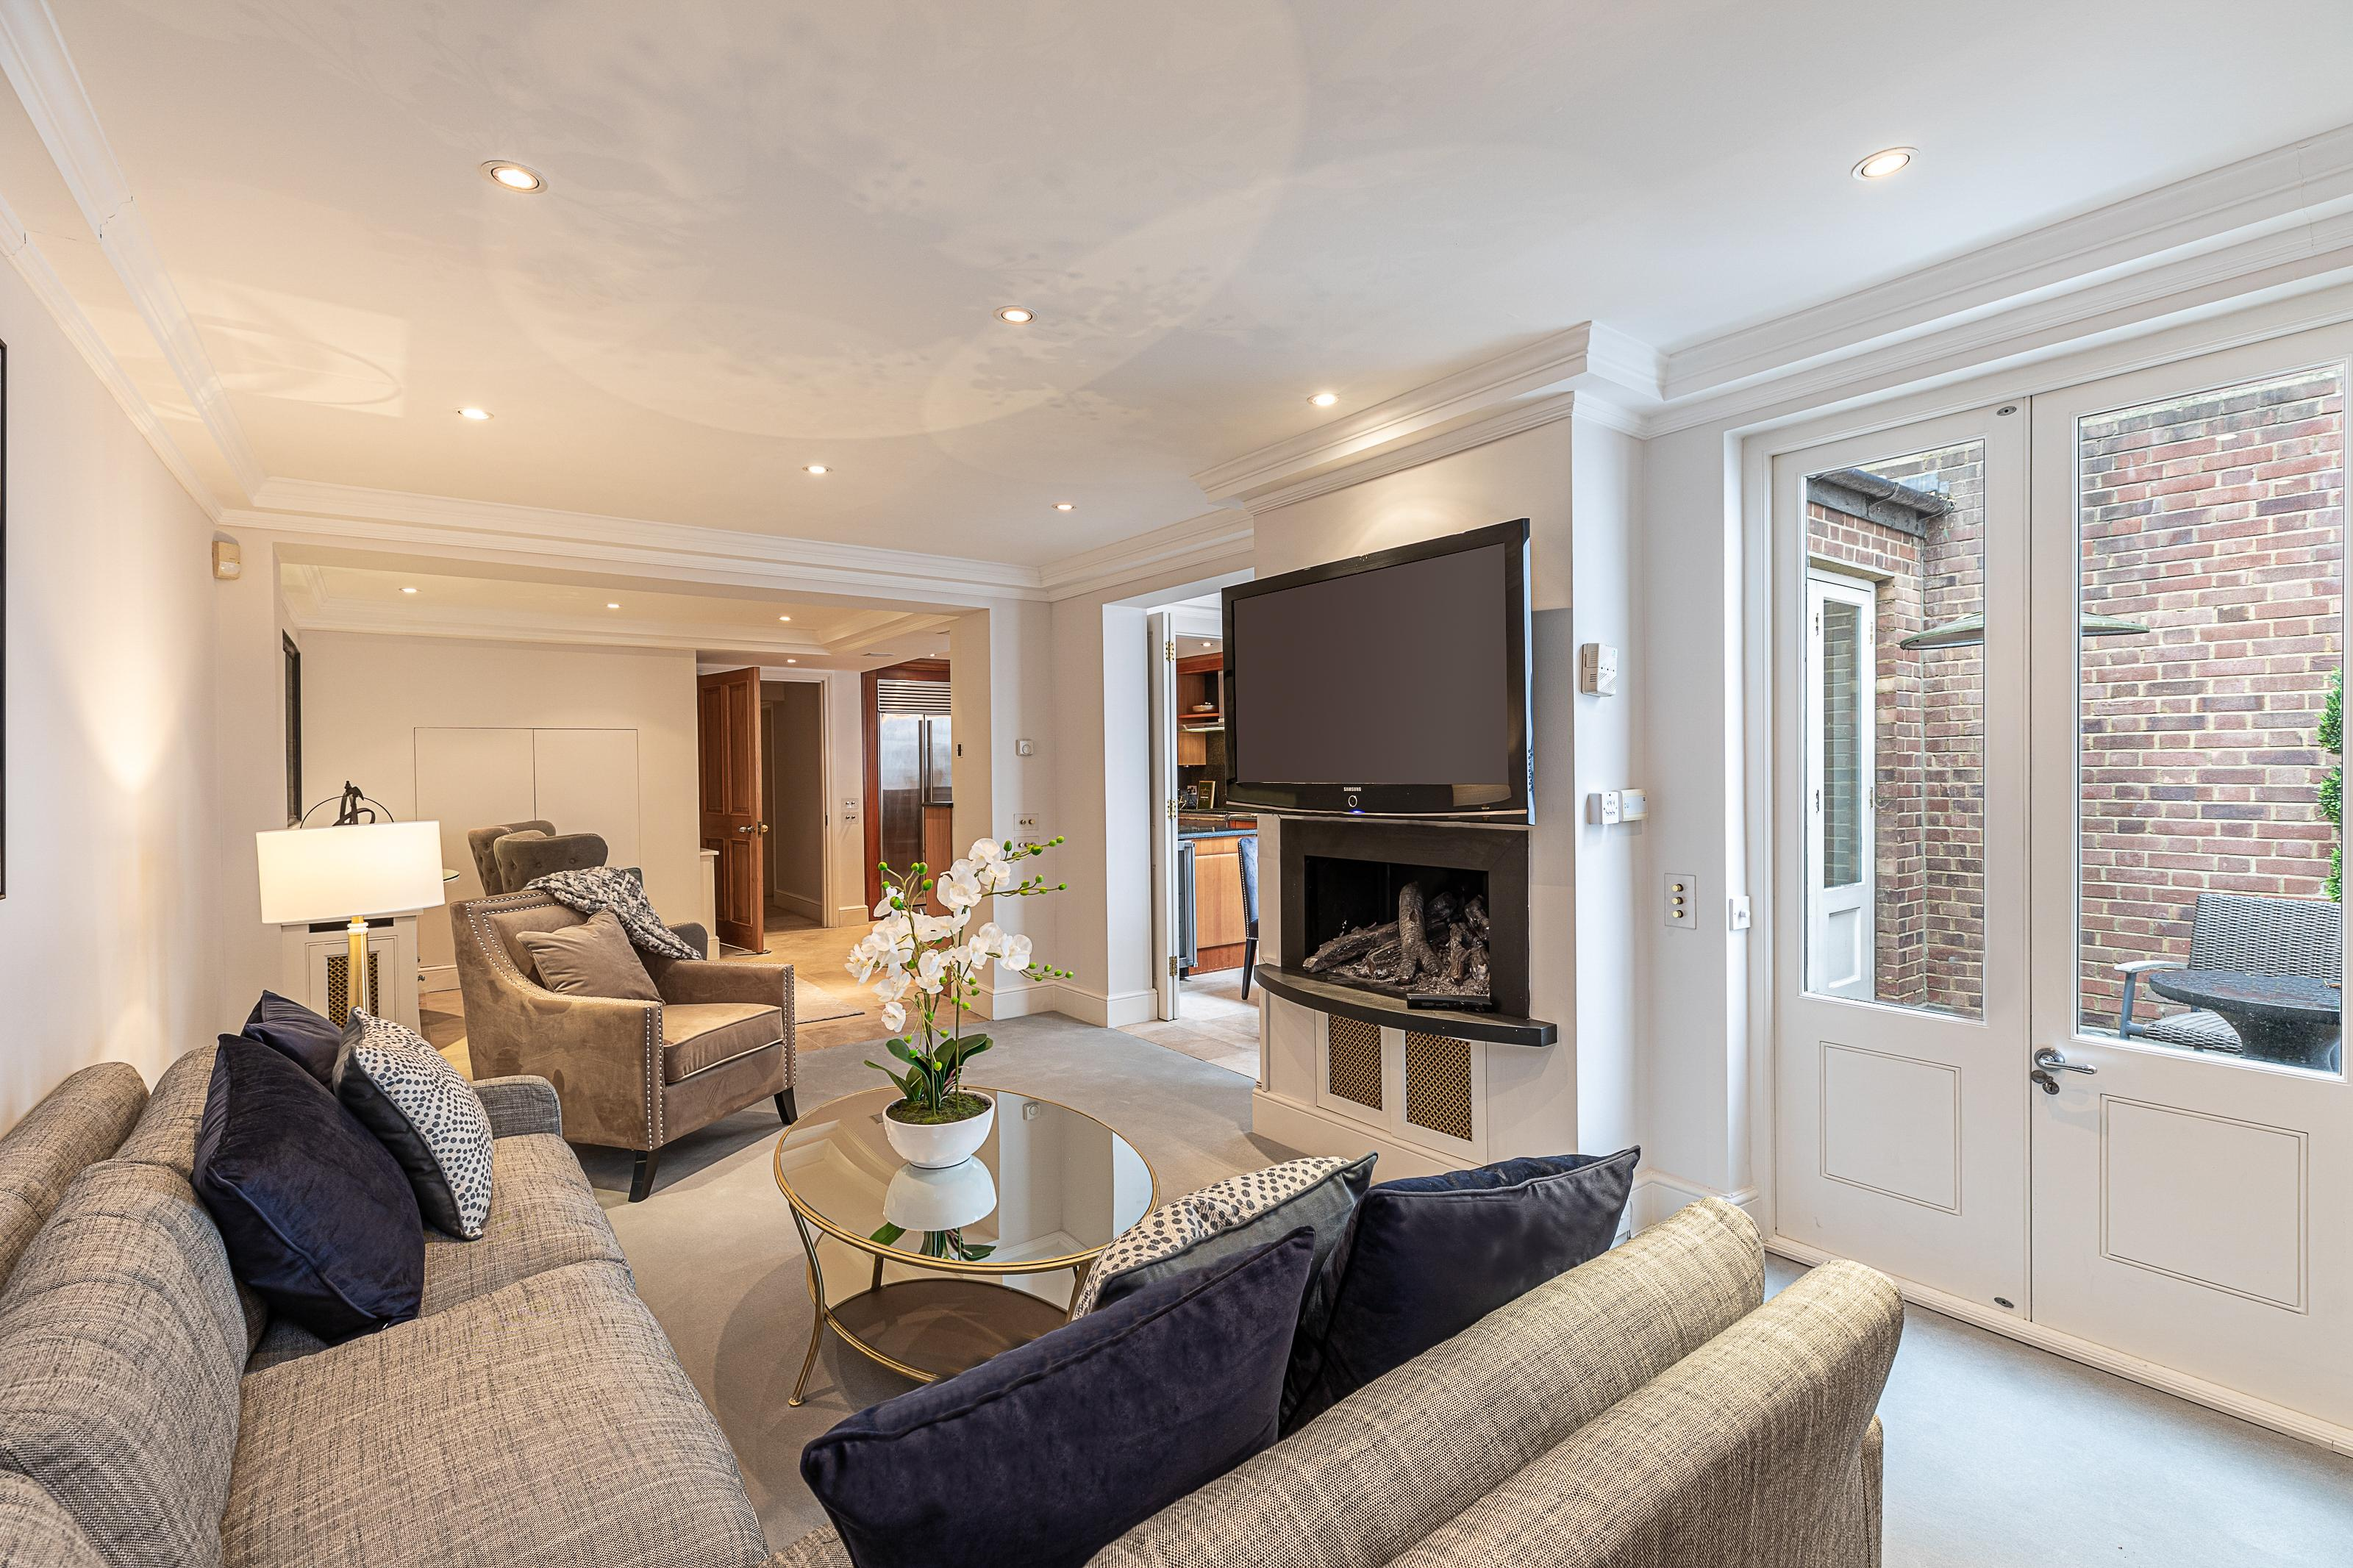 Property Image 1 - Exceptional 6BR house in Knightsbridge by Harrods